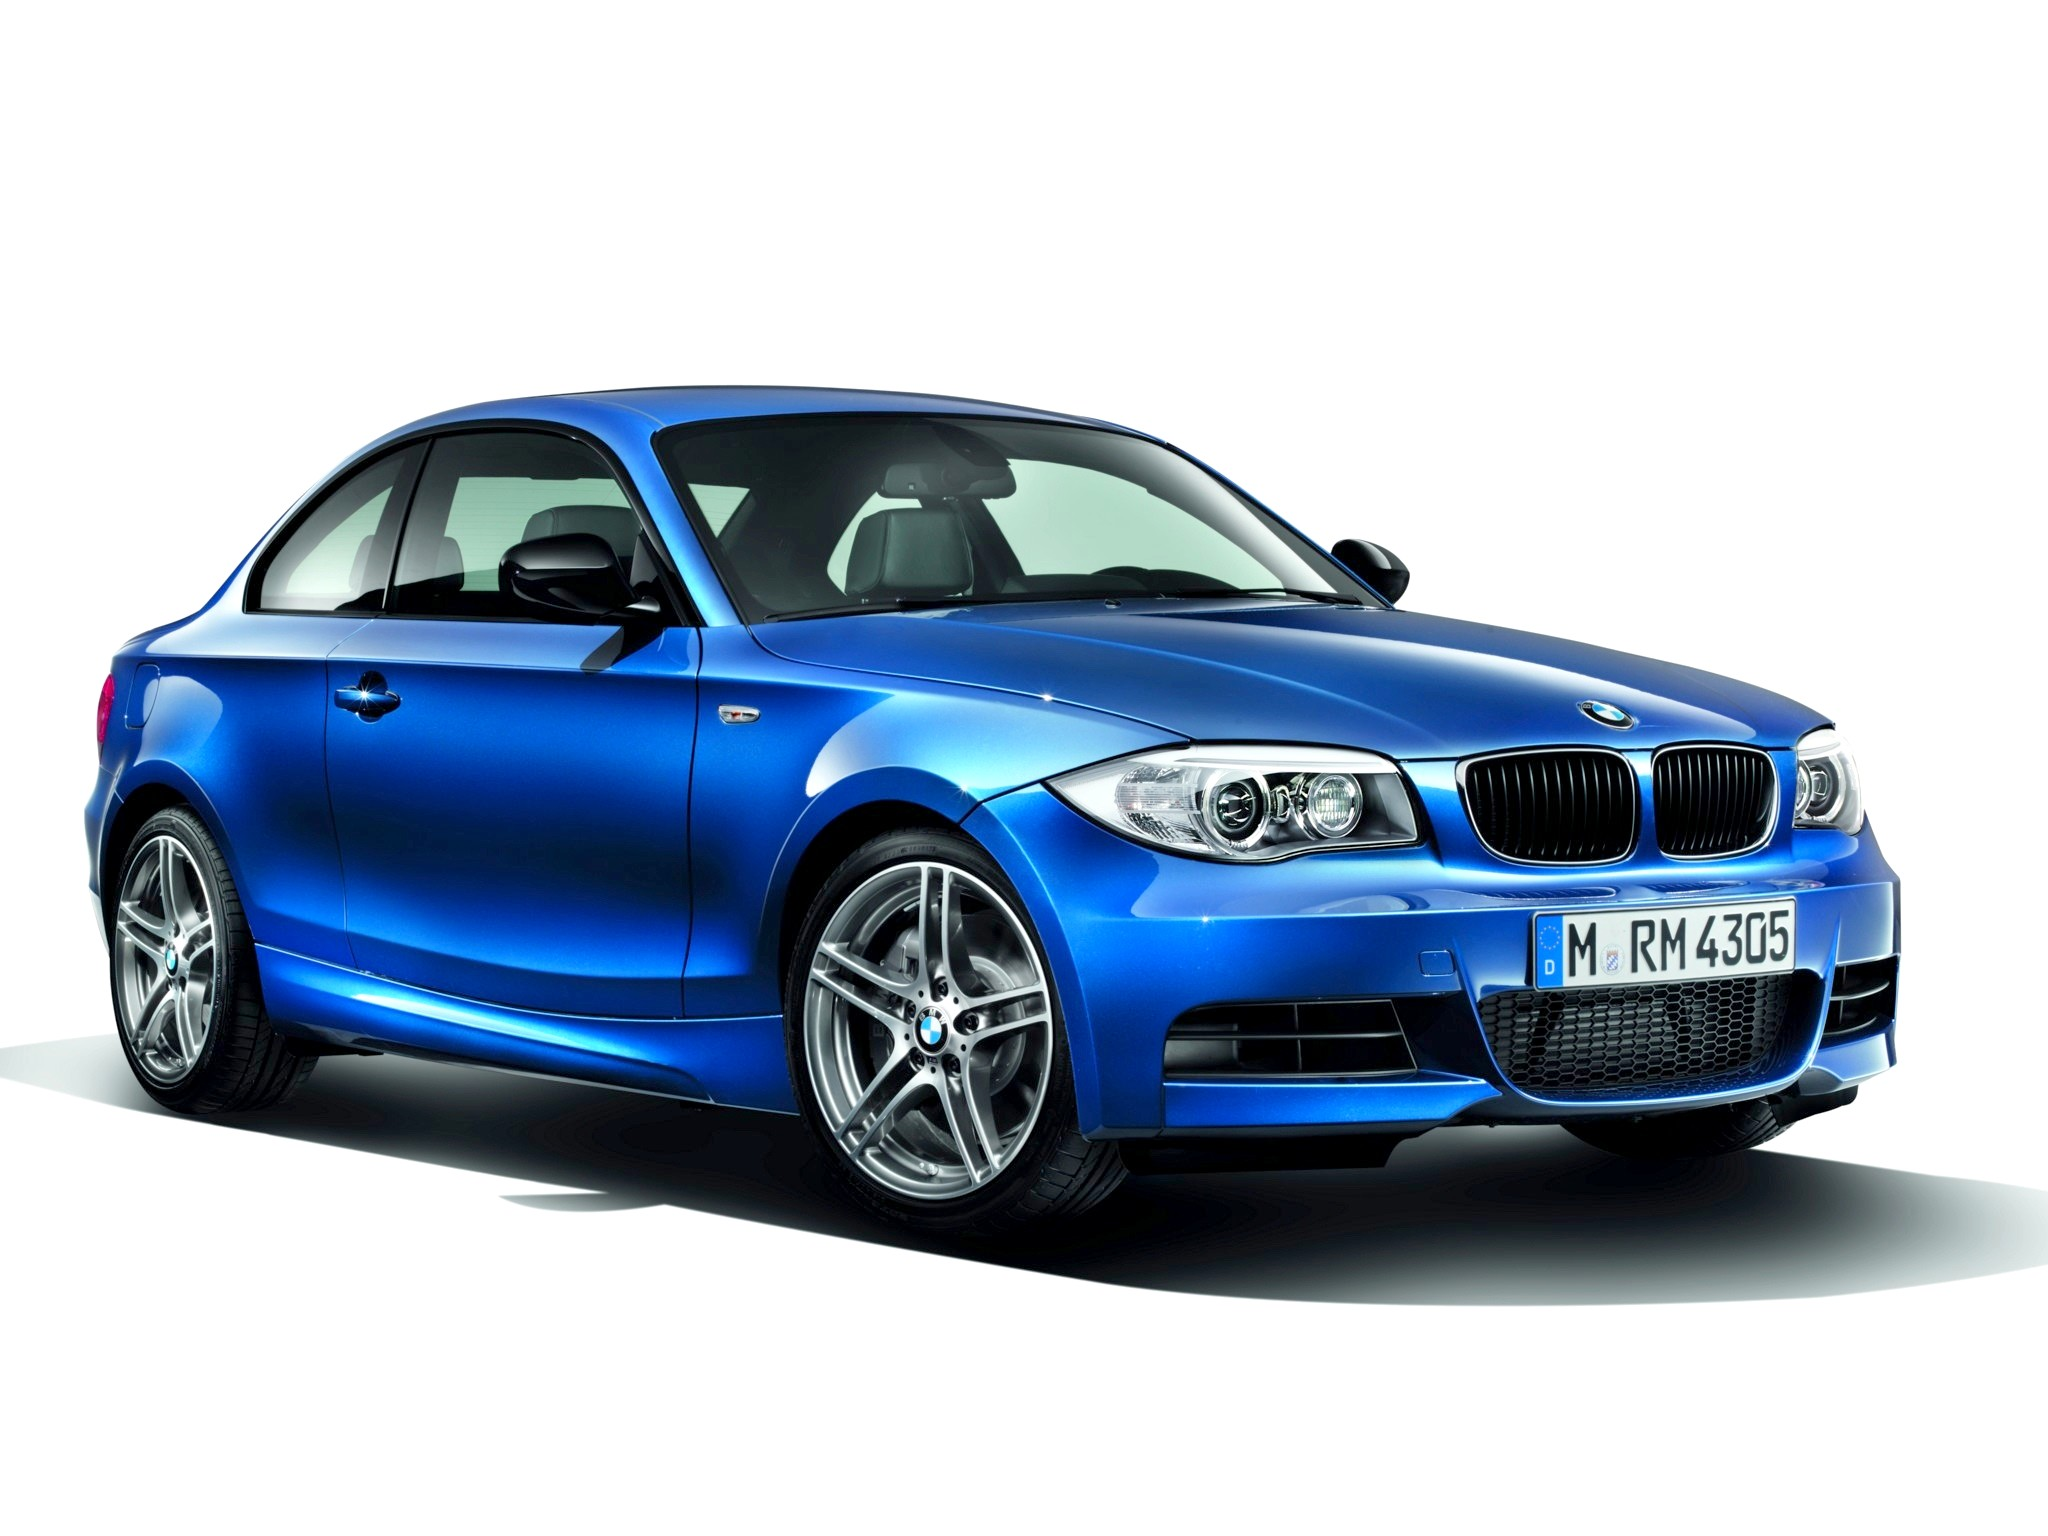 BMW 1 series 135is 2012 photo - 1